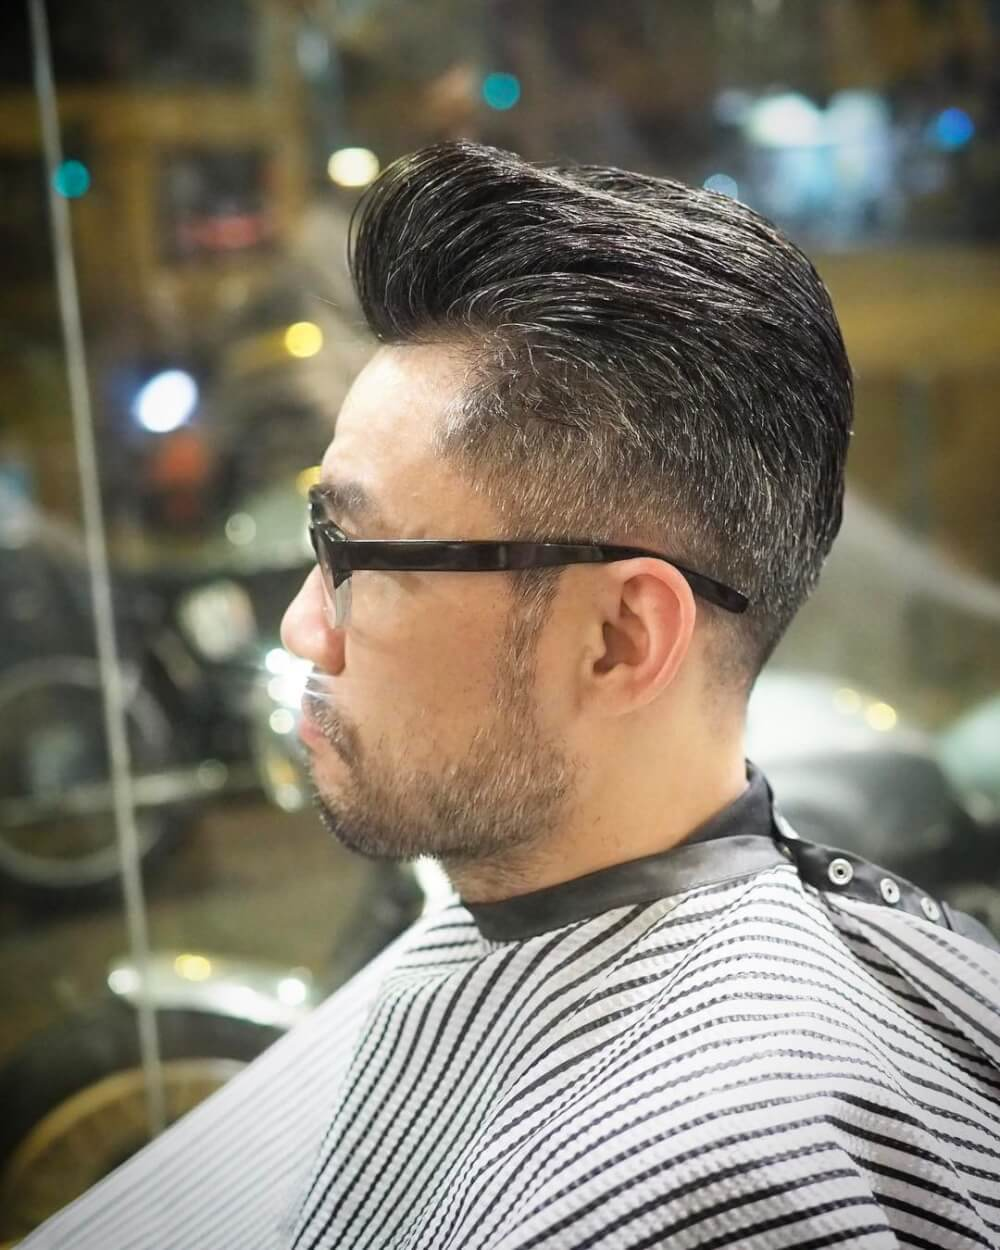 Rockabilly Pomp hairstyle